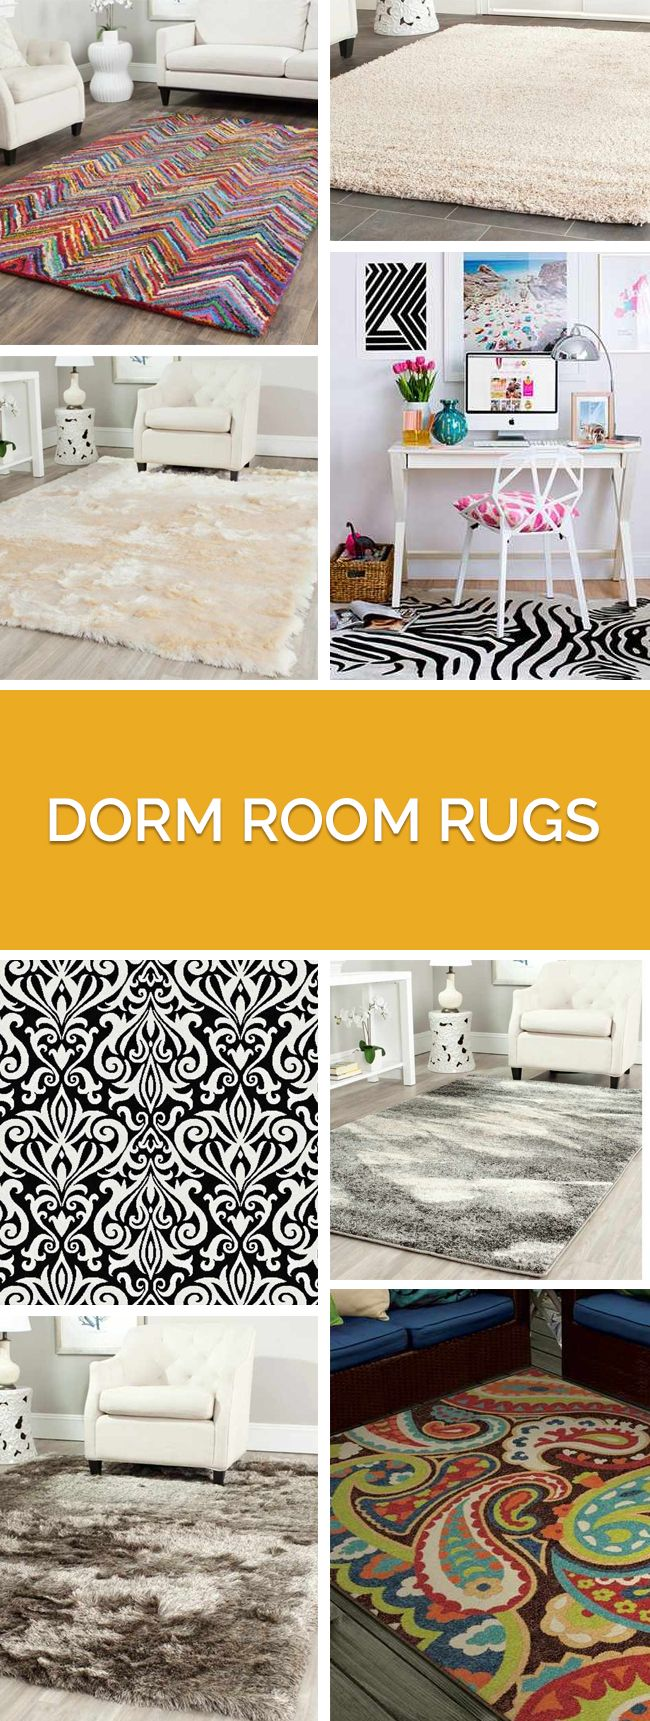 Dorm Room Rugs That Fit Every Budget! Chic Styles And Colors To Fit Every  Room